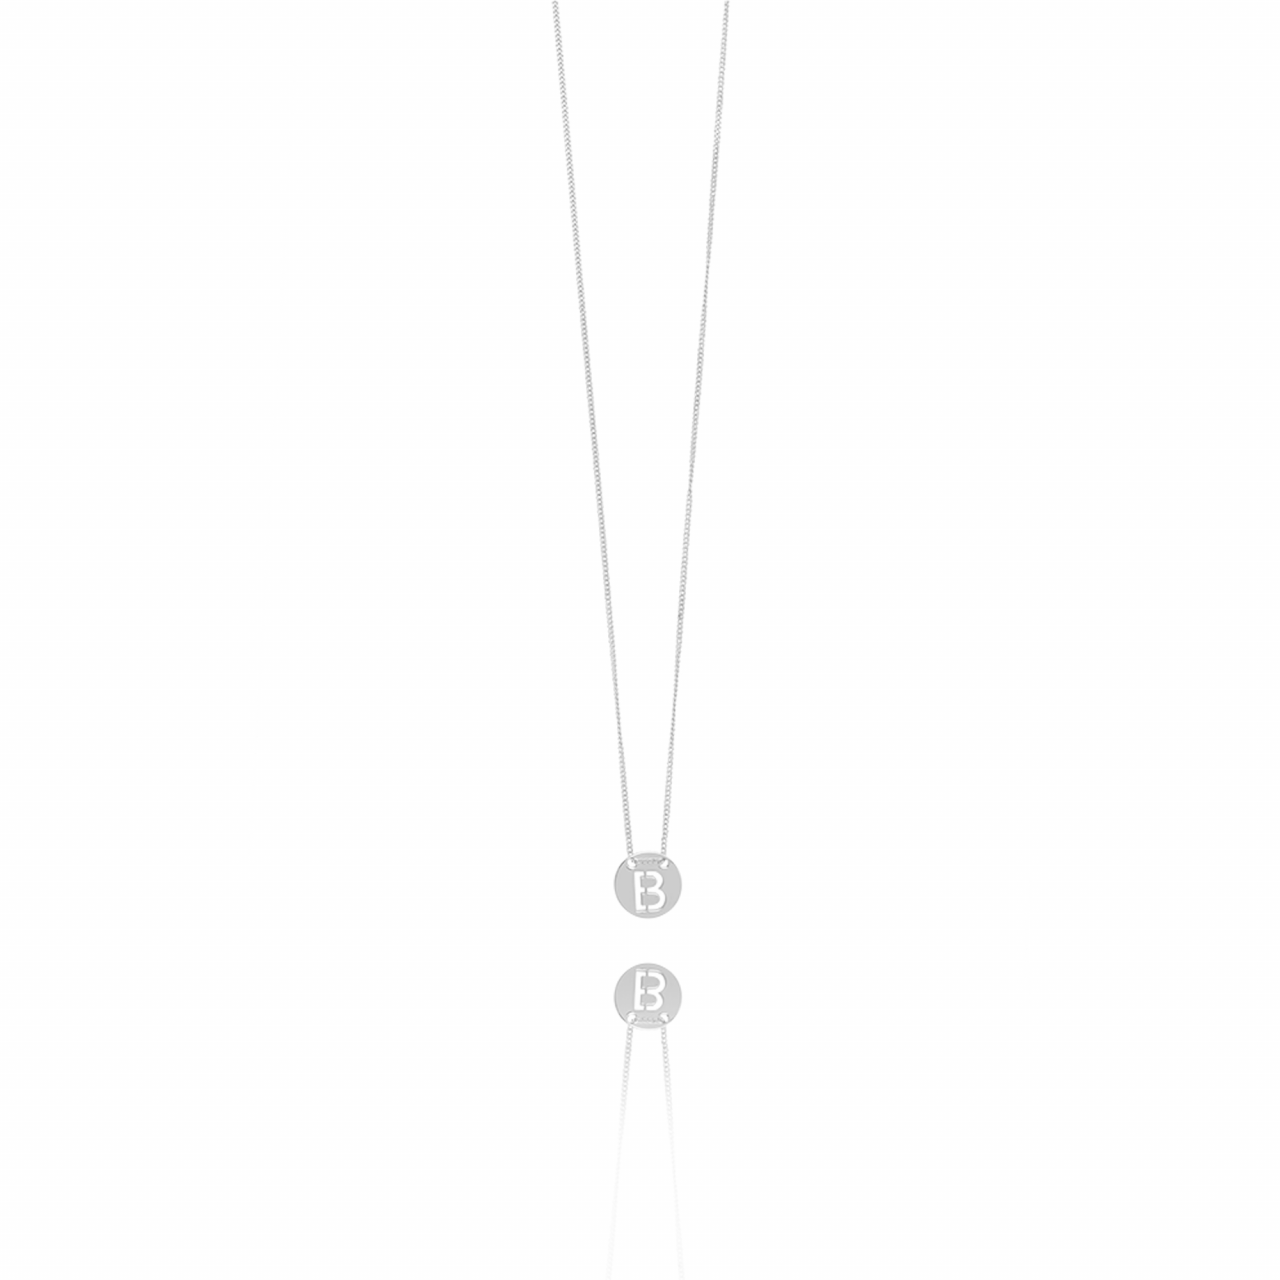 Silver Initial necklace small